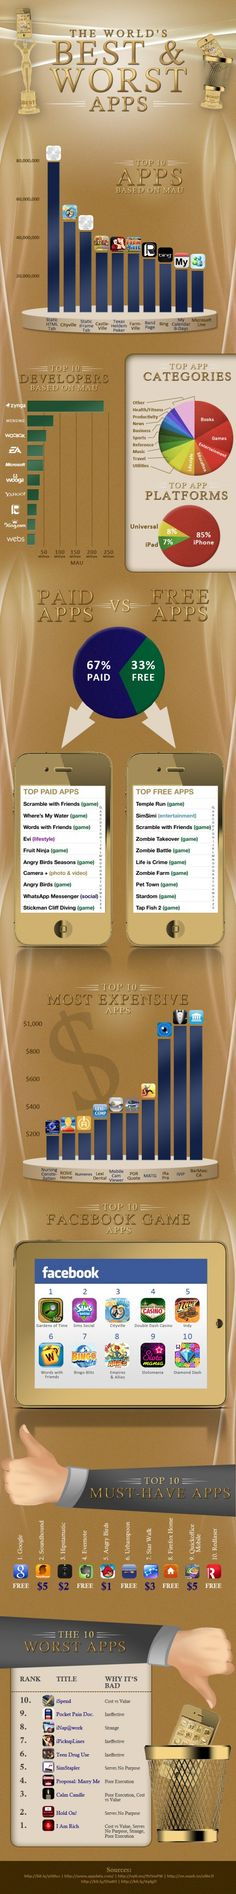 The World's Best and Worst Apps (infographic) #hcsm What, no mobile health apps?